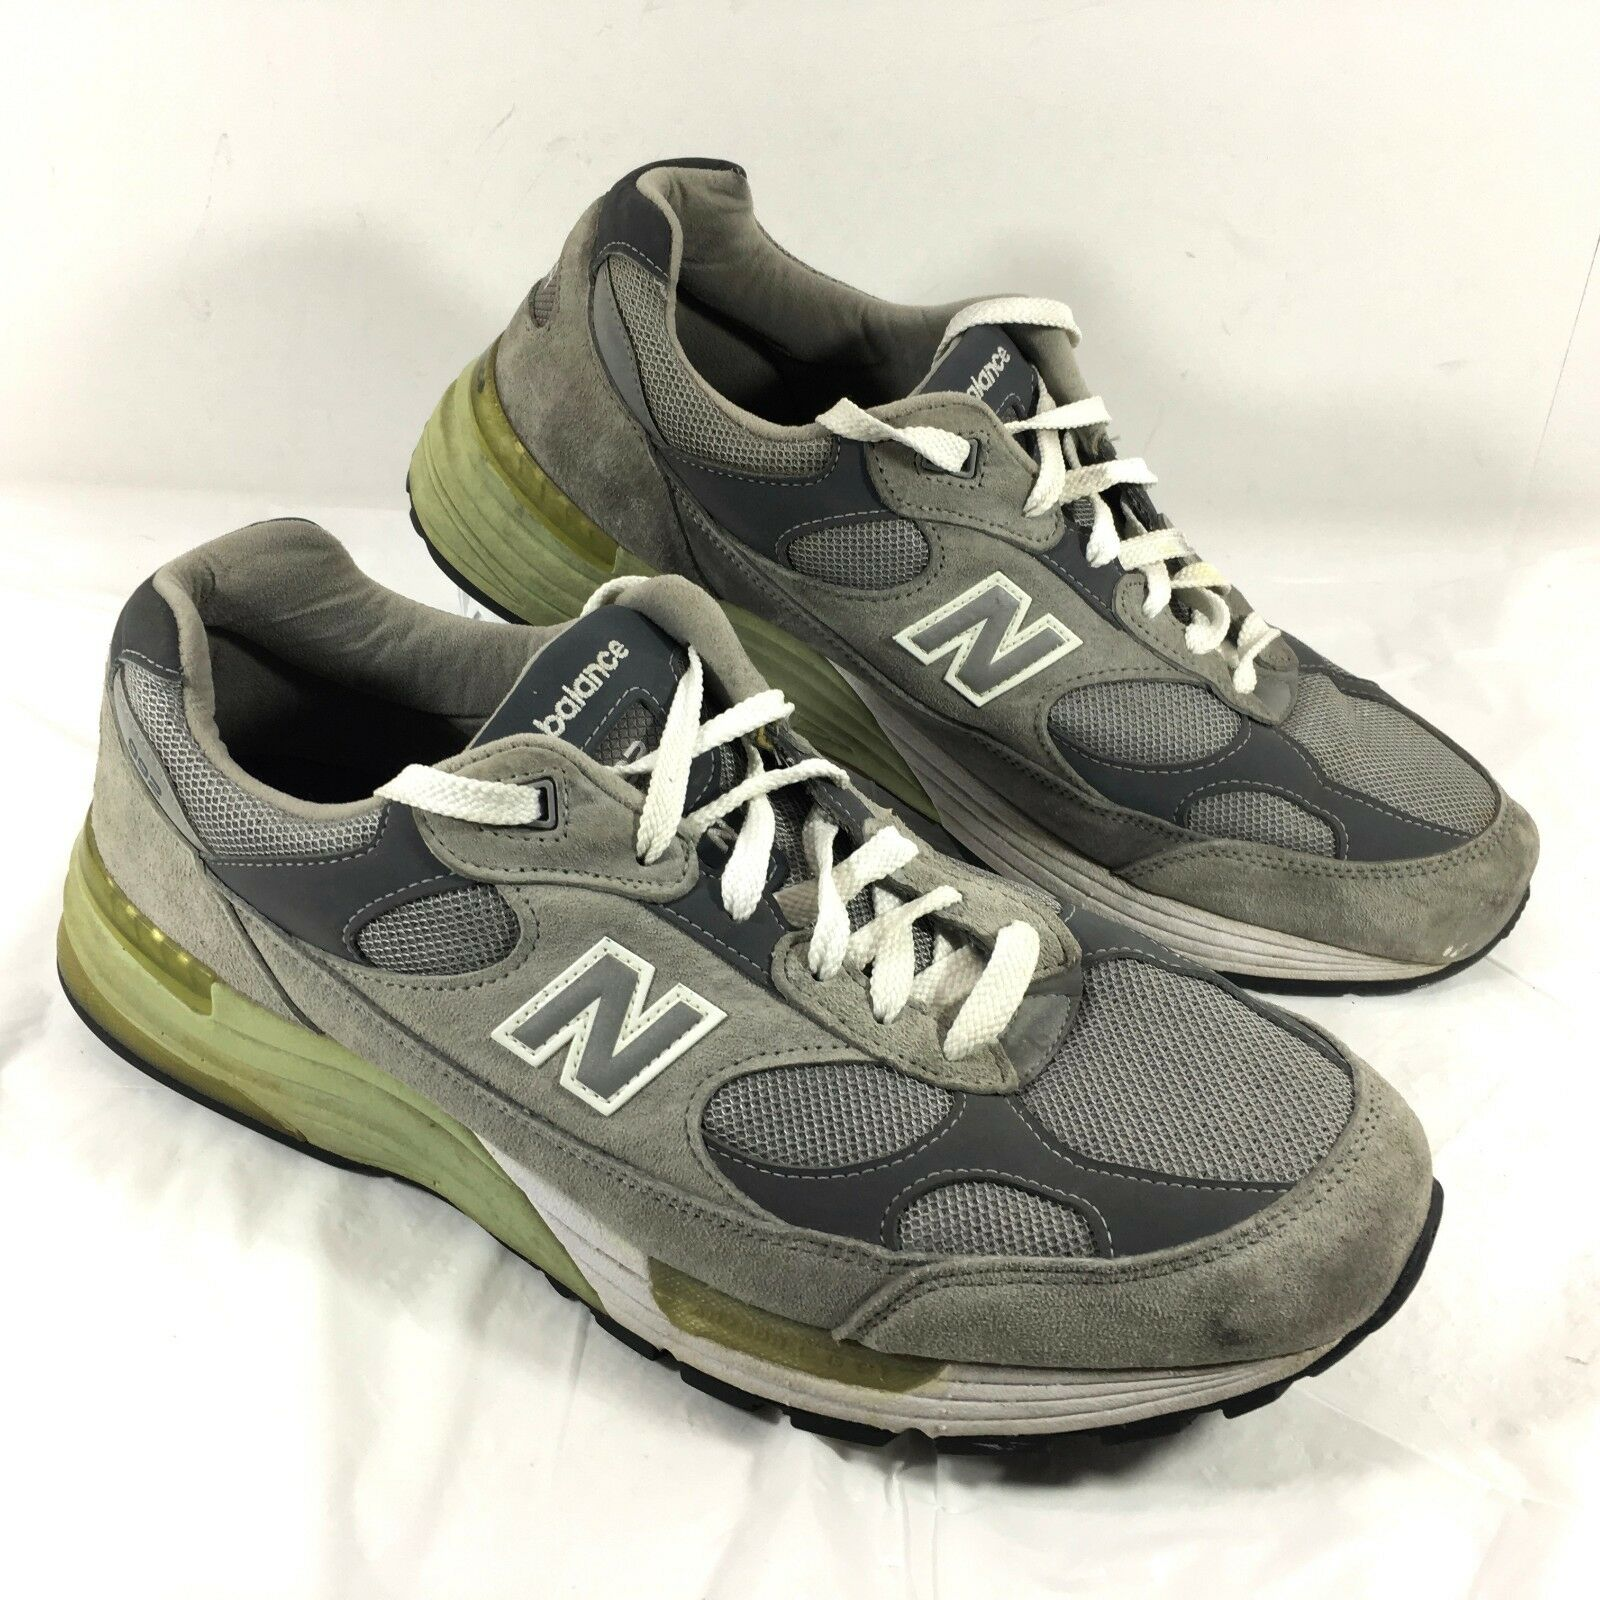 b9ca1e245edef GUC GUC GUC Men s New Balance 992 Walking Shoes Gray suede leather Comfort Sz  14 2E